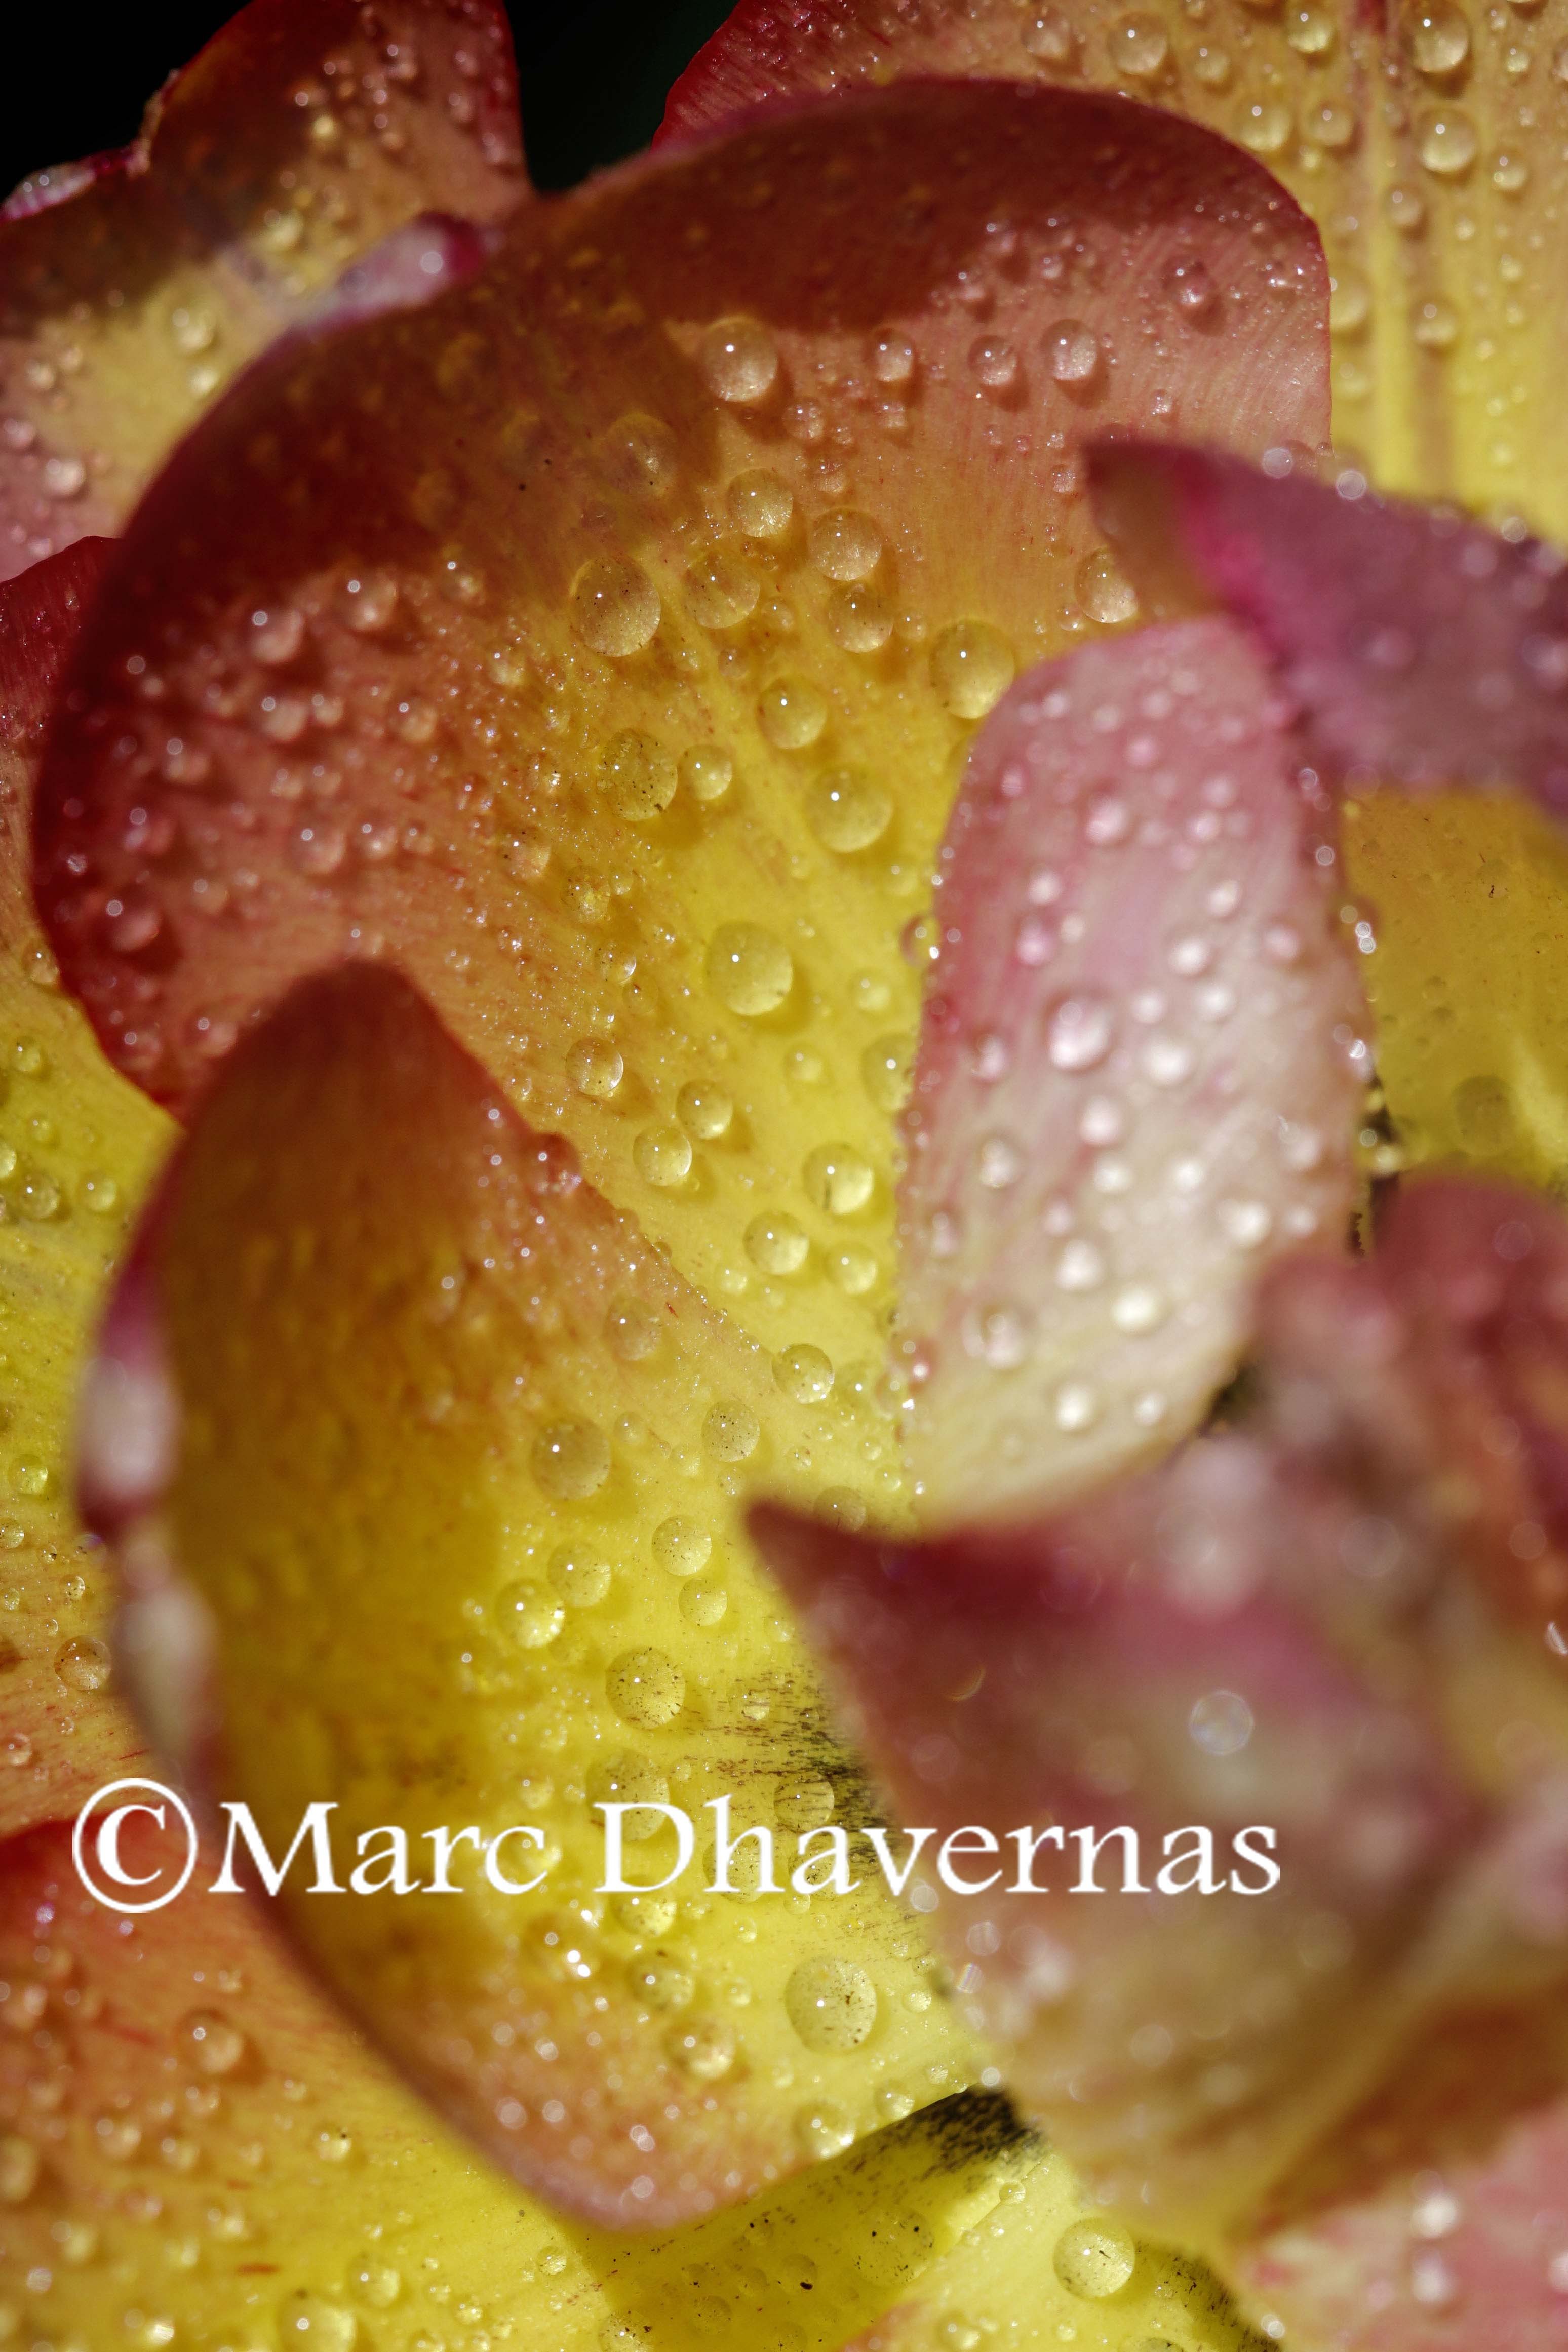 Water droplets on tulips